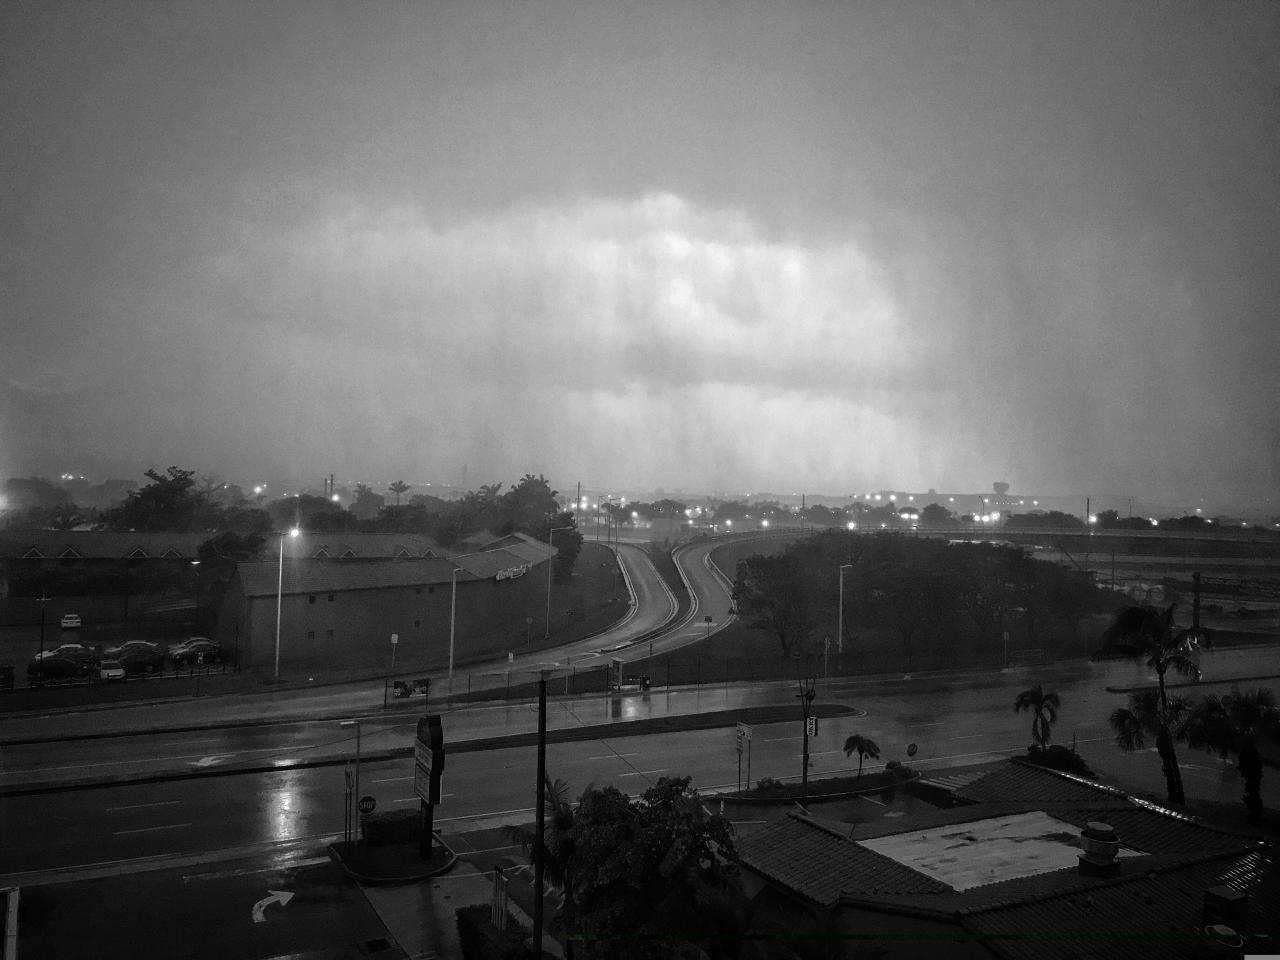 <p>Heavy rain from the initial feeder band of storms fed by Hurricane Irma hit the Miami International Airport early Saturday. (Photo: Holly Bailey/Yahoo News) </p>